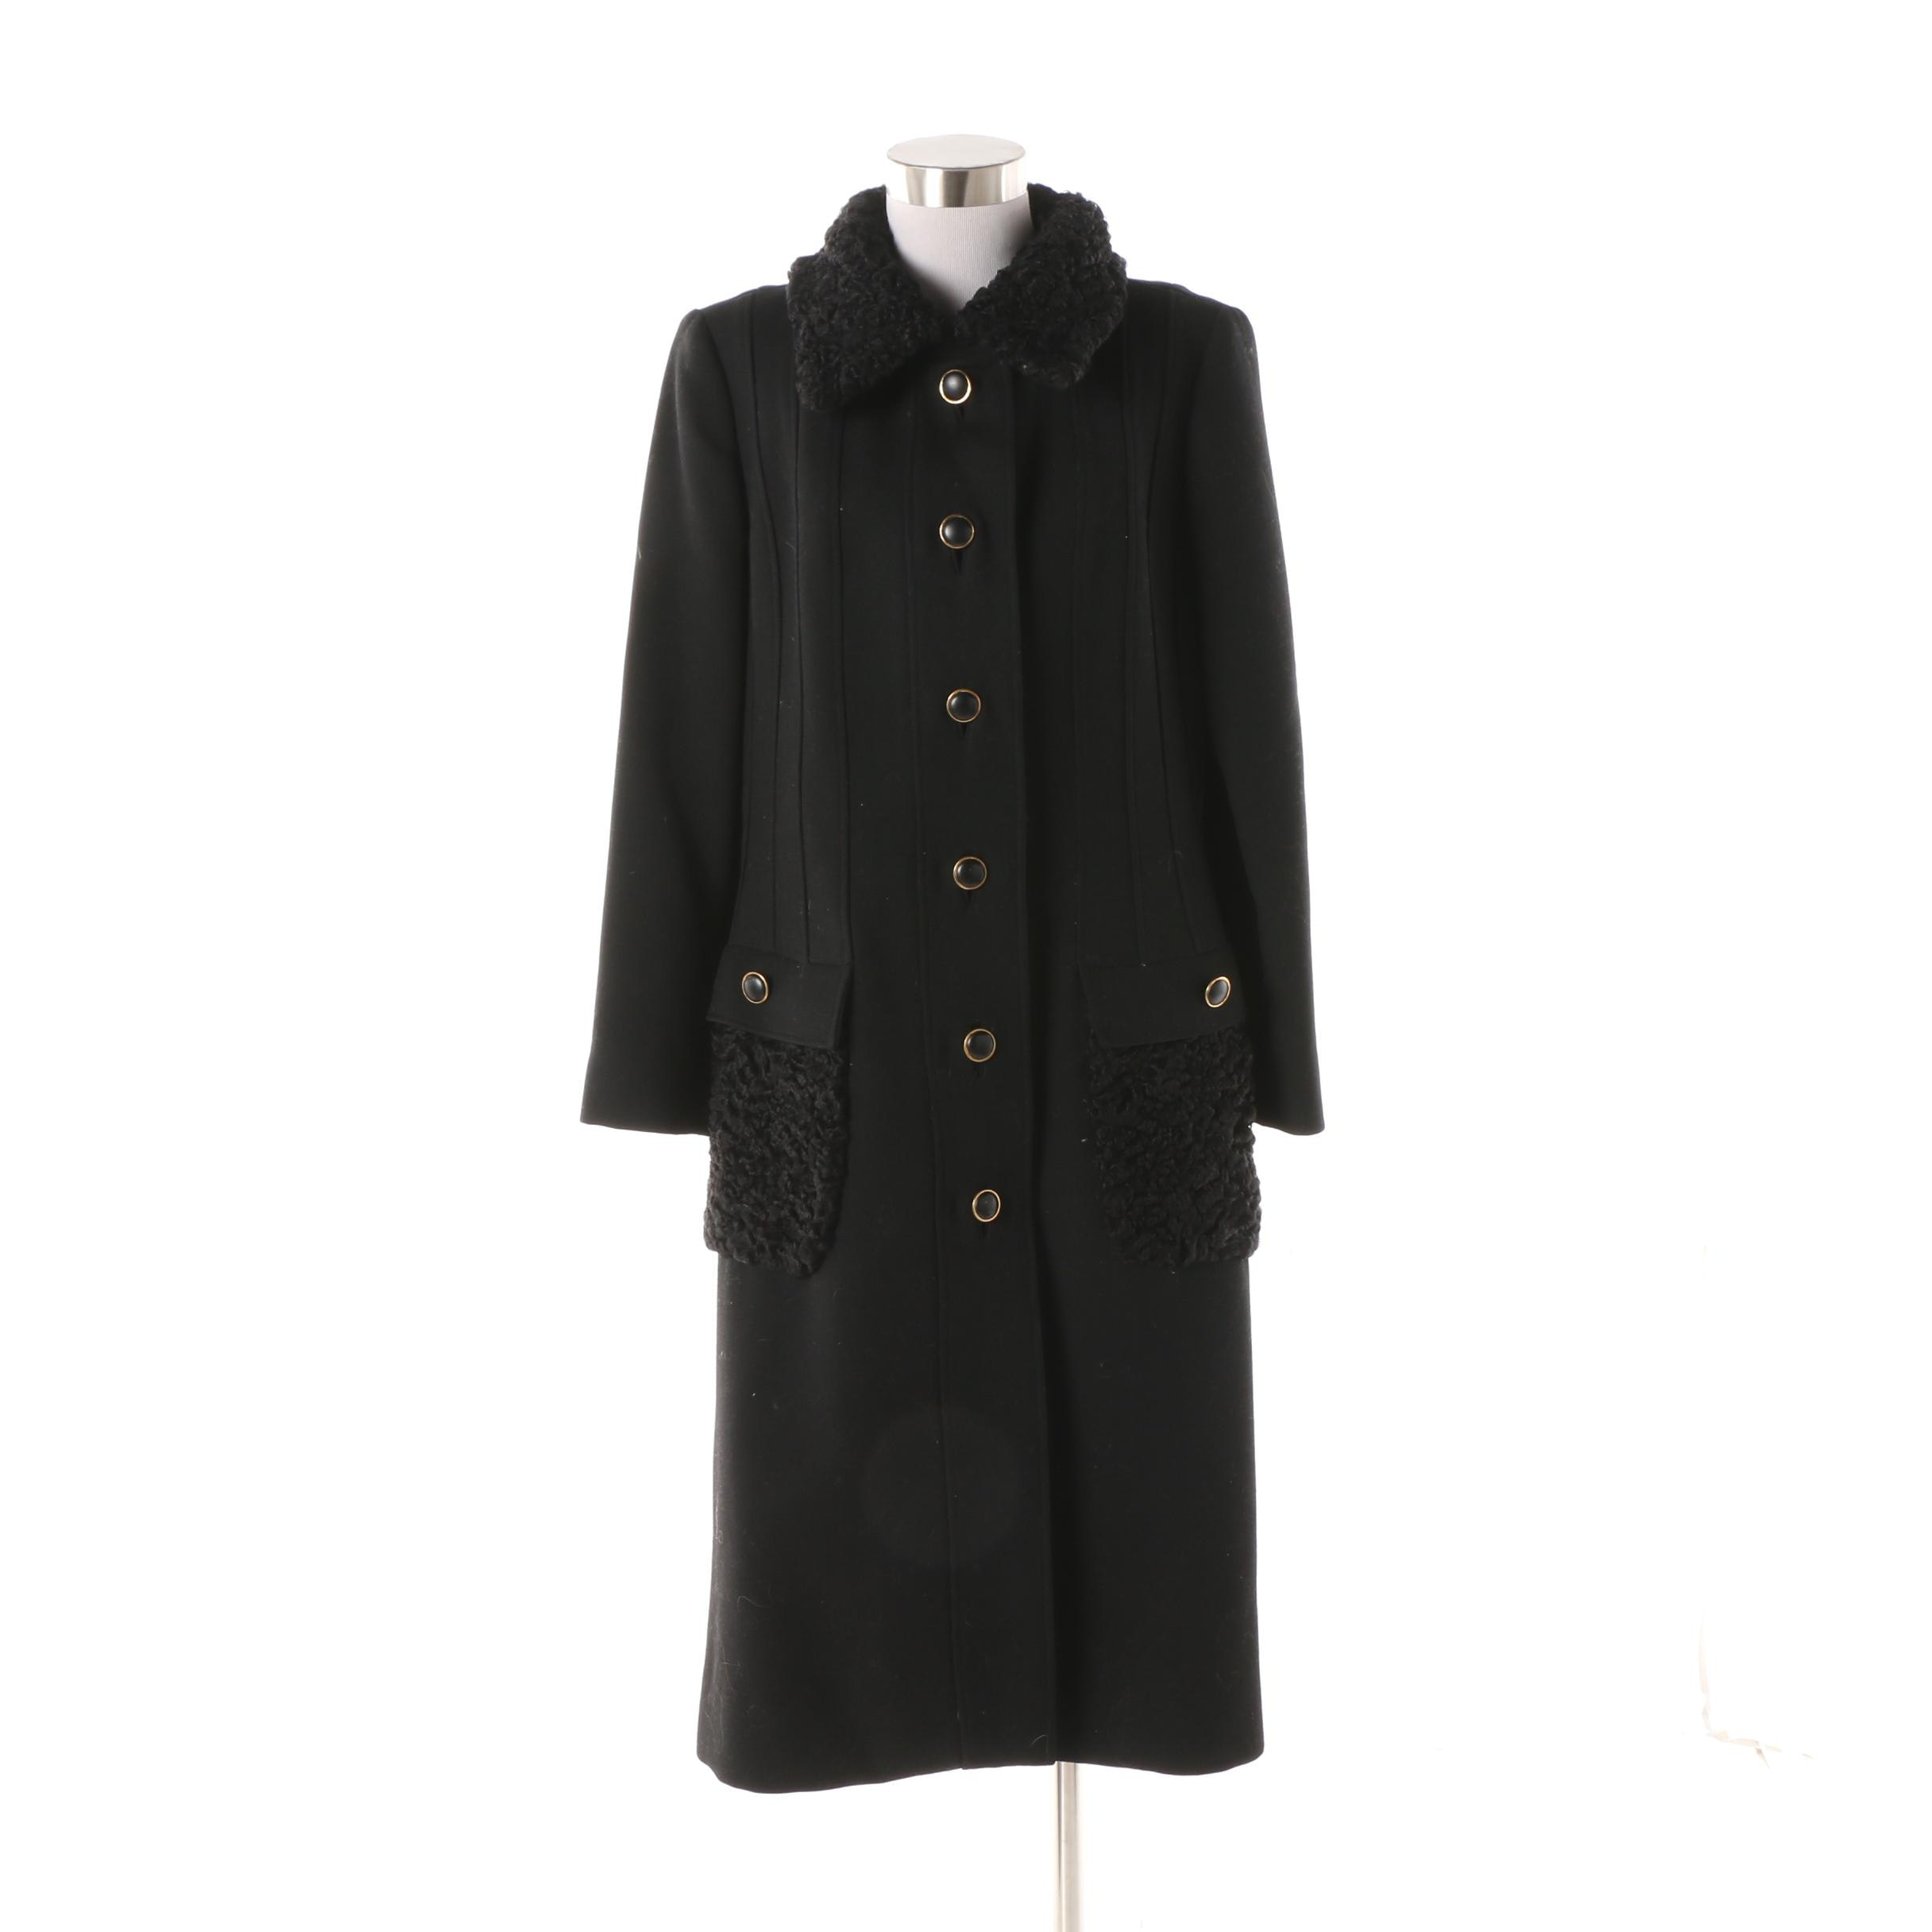 Circa 1970s Stegari Black Wool Dress Coat with Persian Lamb Fur Accents